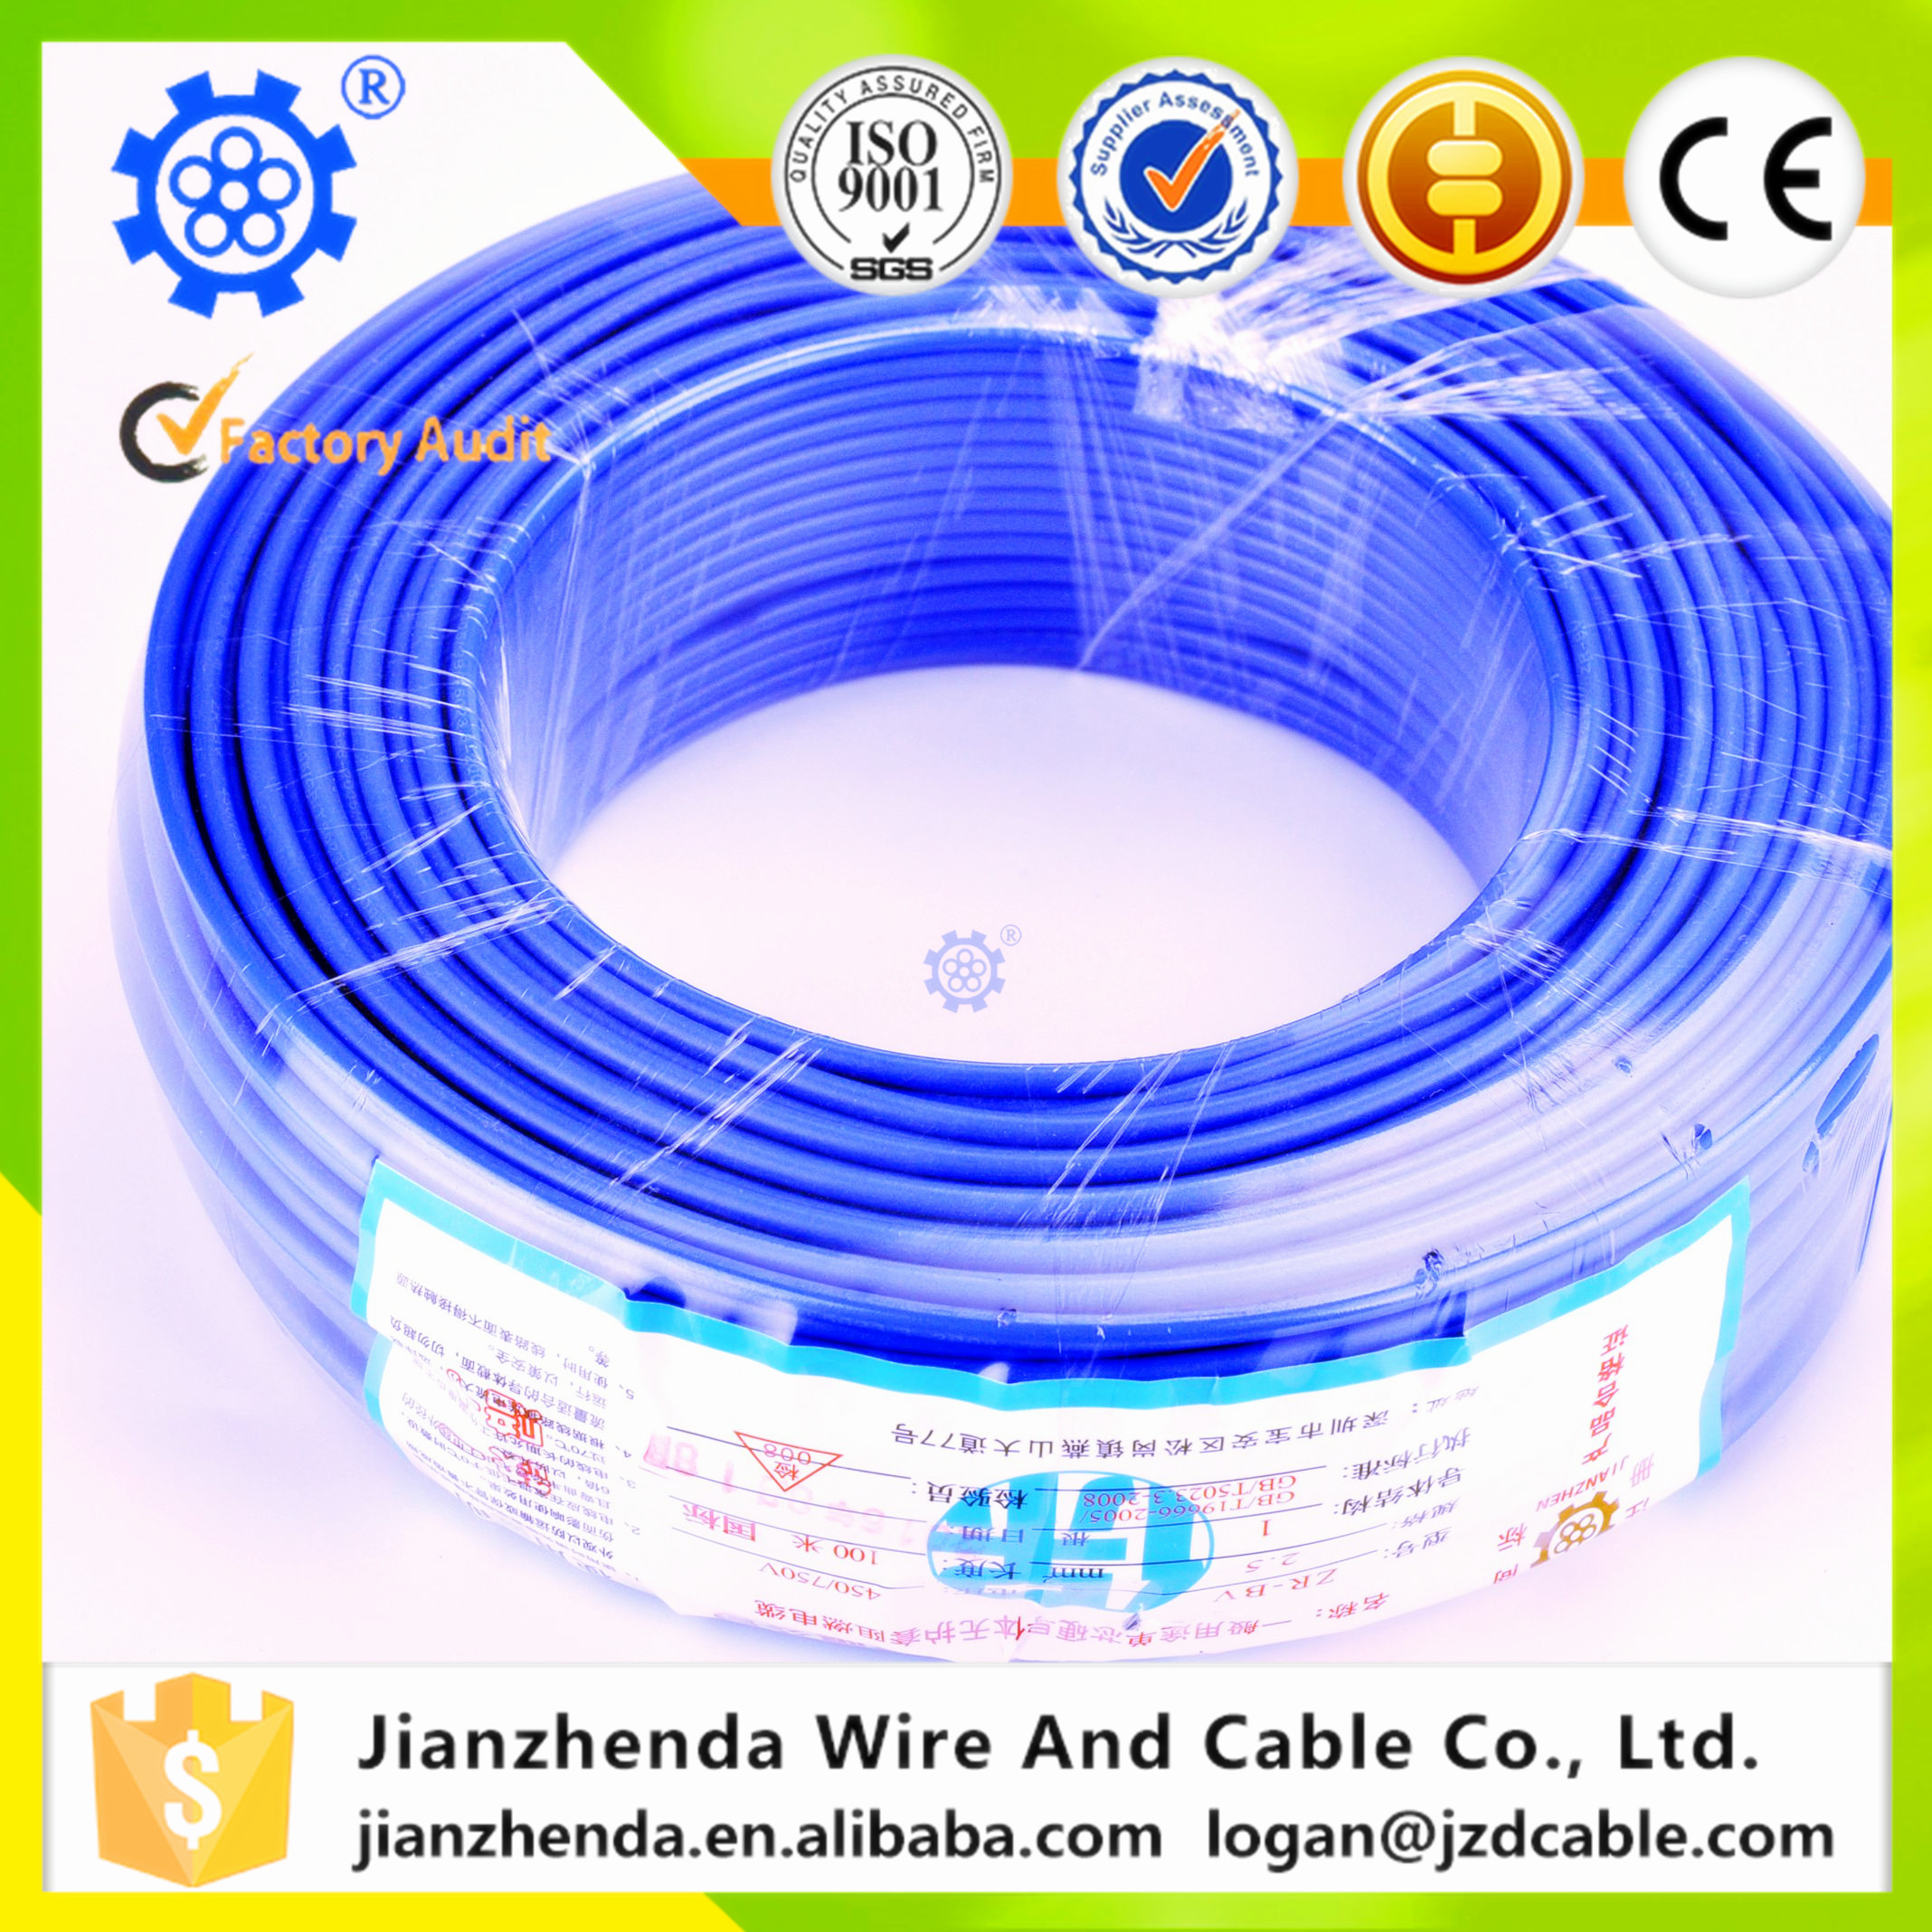 Types Of Electrical Cable, Types Of Electrical Cable Suppliers and ...